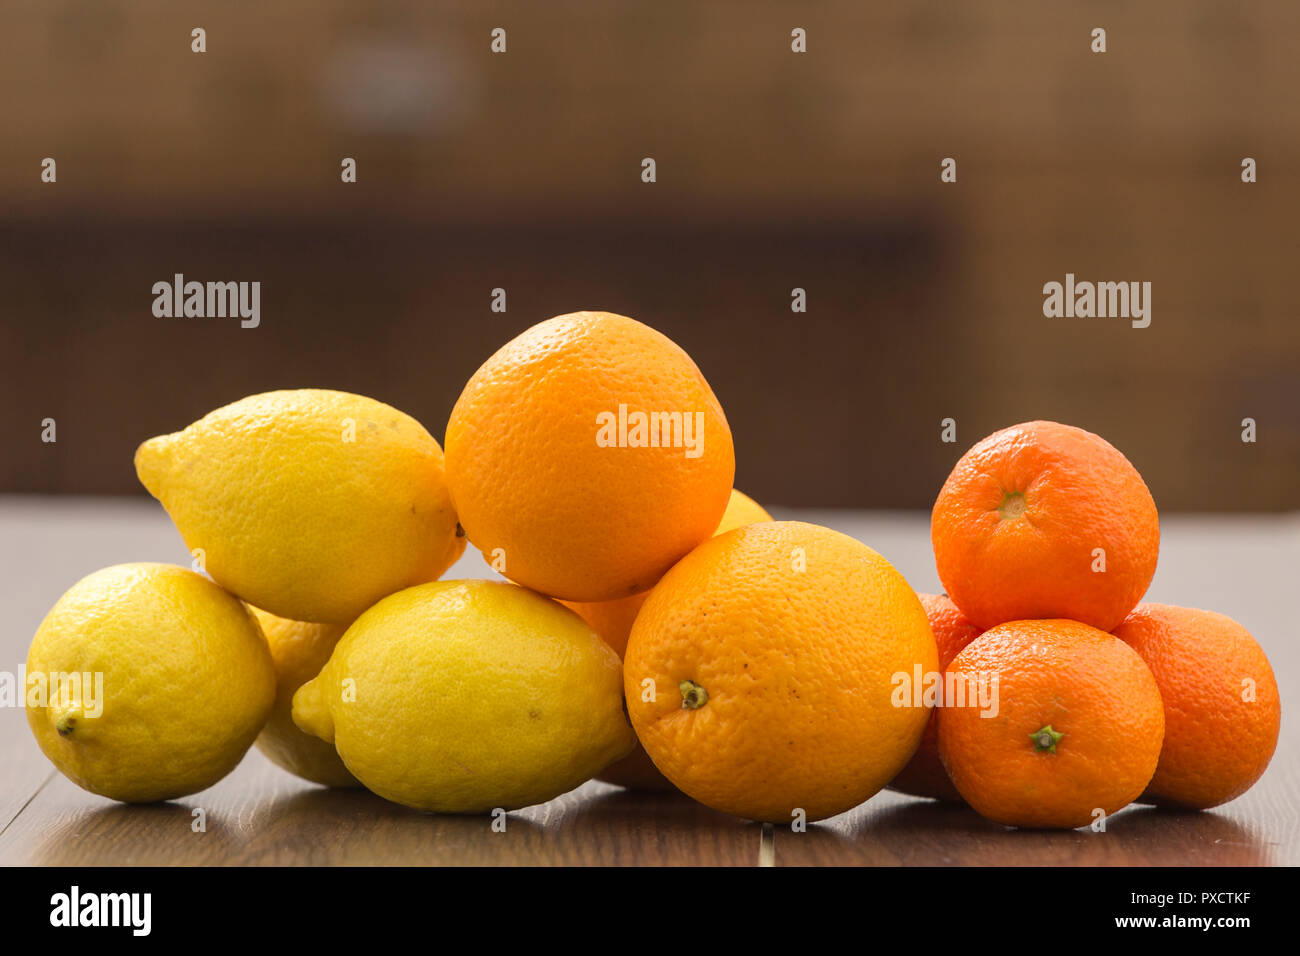 still life with oranges, lemons and tangerines placed together in groups, on a background and surface of brown tones - Stock Image